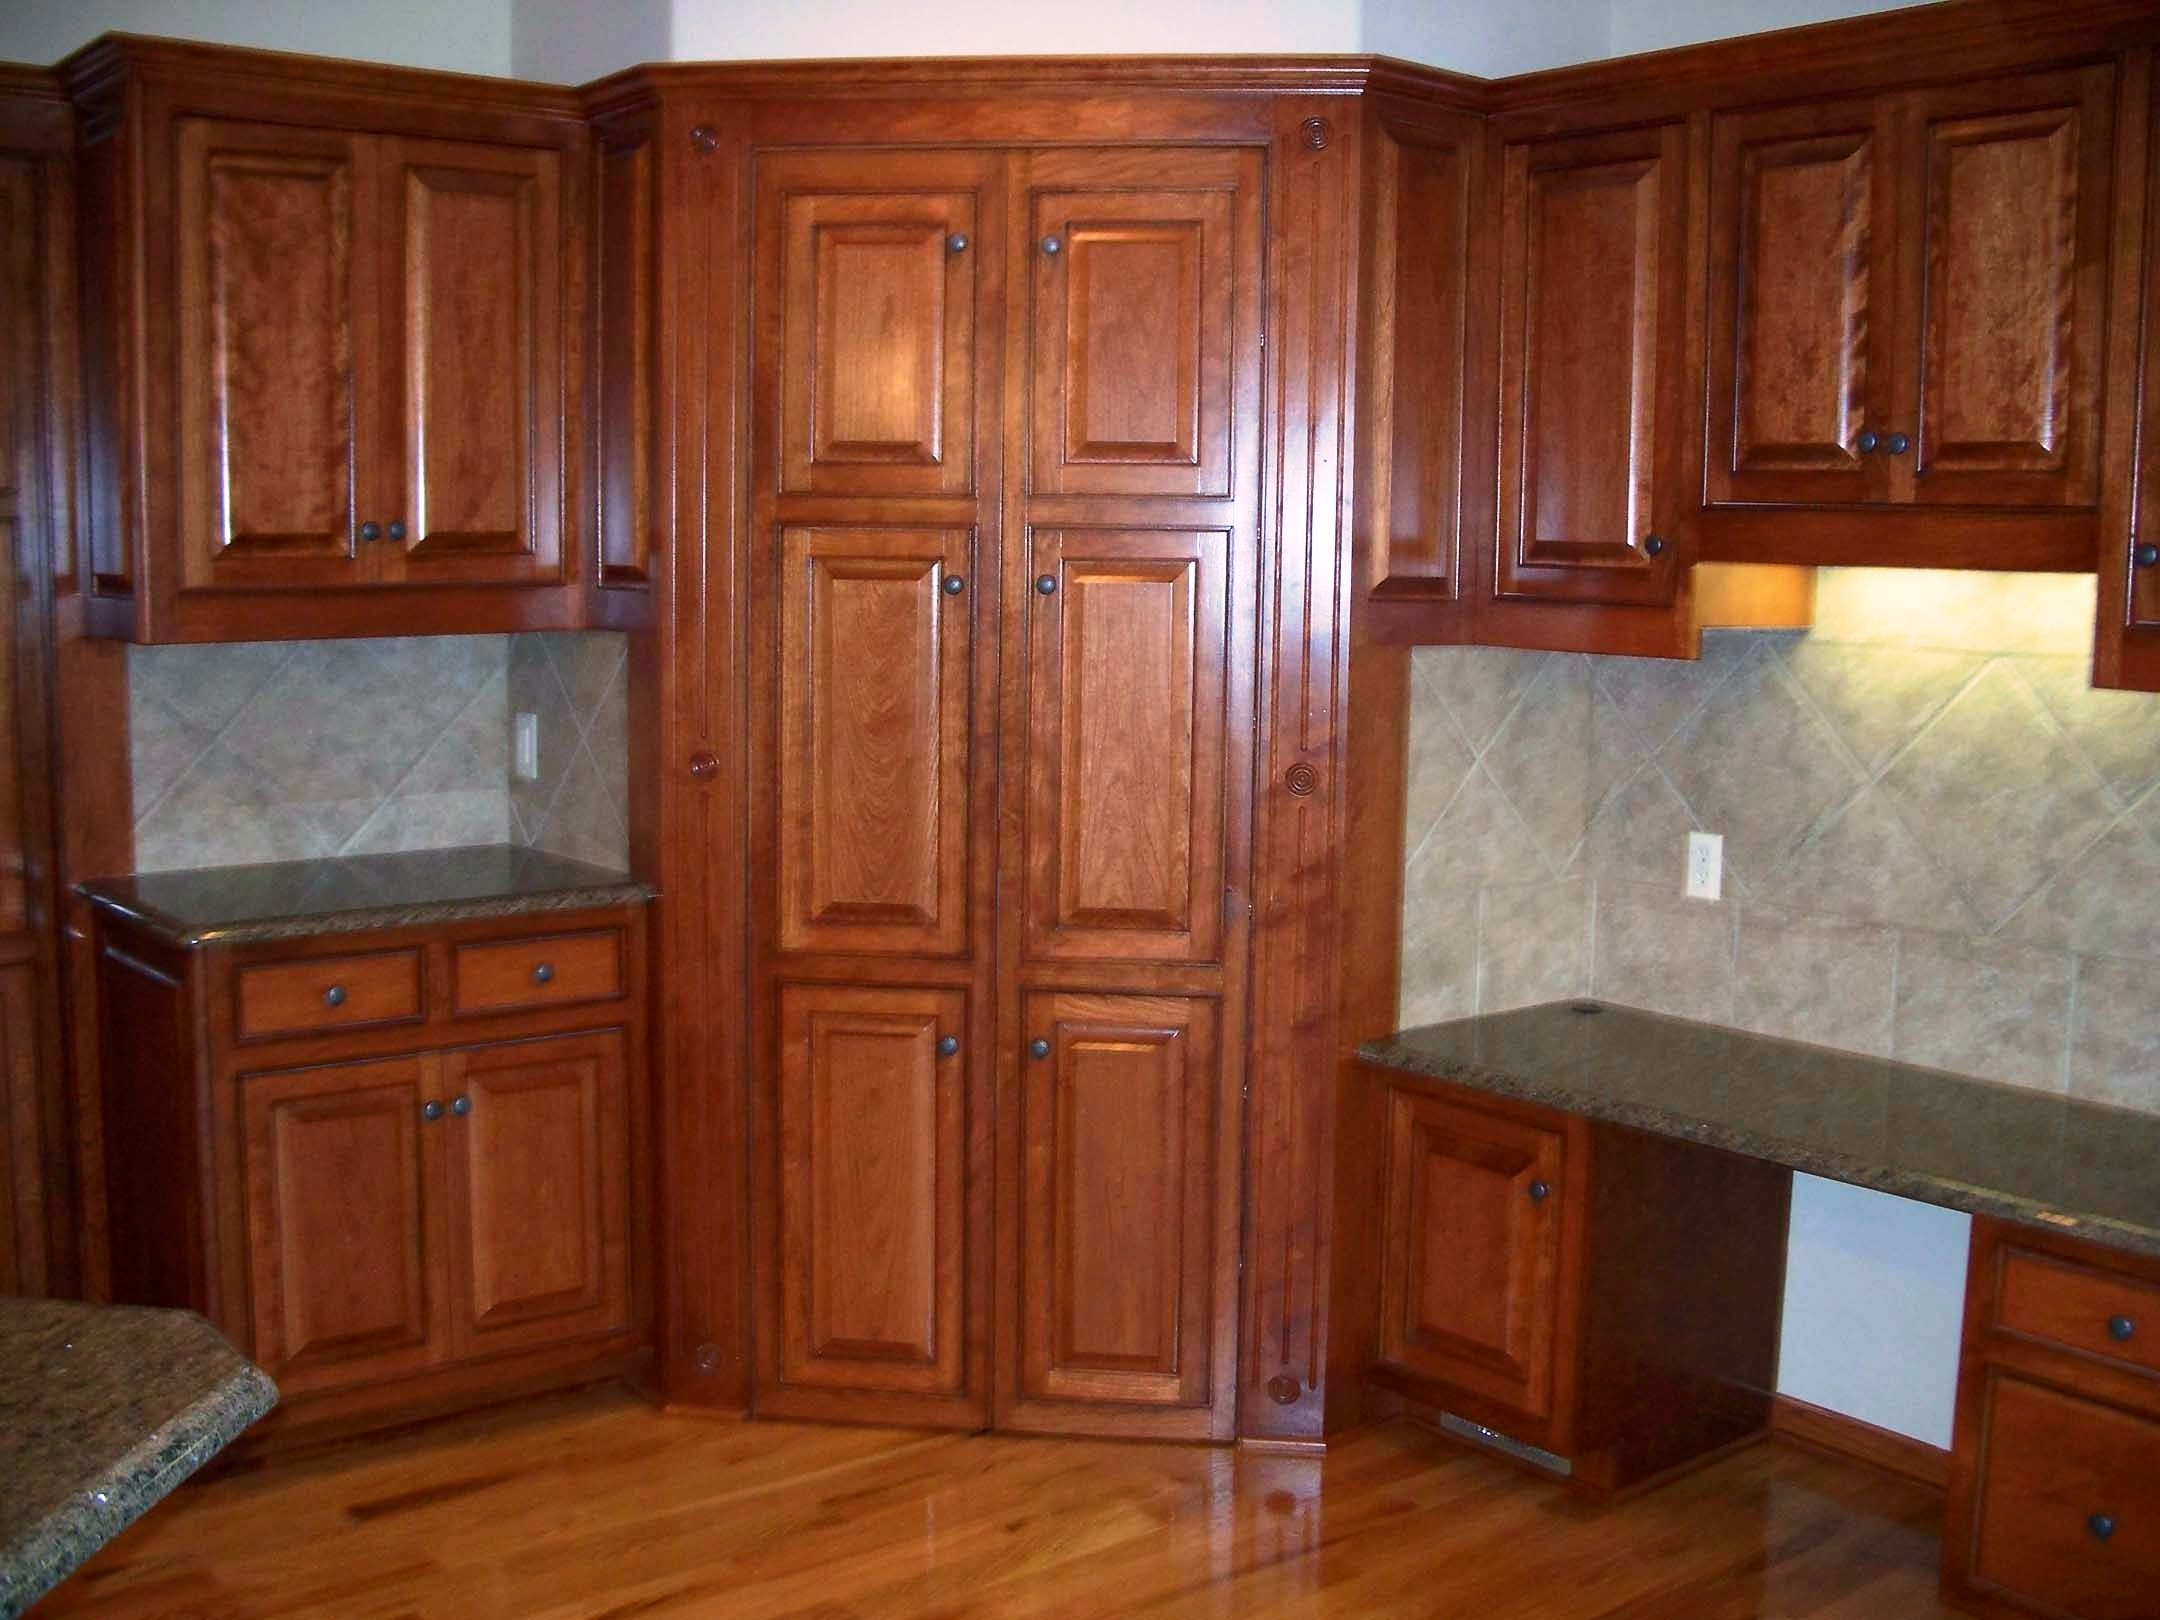 Corner pantry cabinet and also kitchen wall cabinets and also small pantry door and also oak pantry cabinet